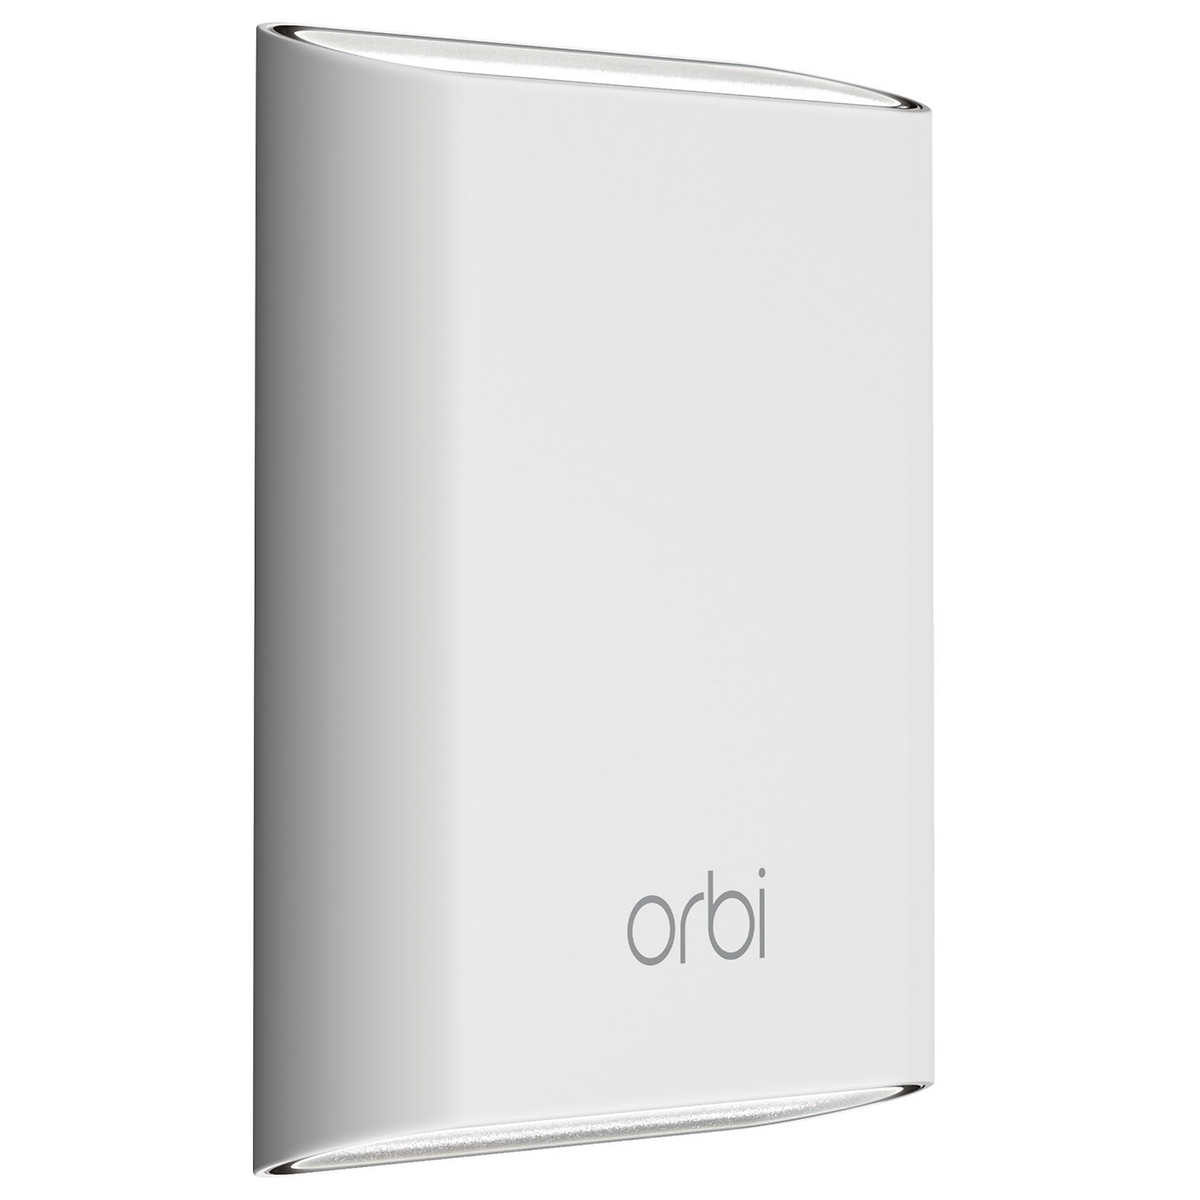 Netgear Orbi RBS50Y Outdoor Weather-resistant Tri-Band Wi-Fi Mesh